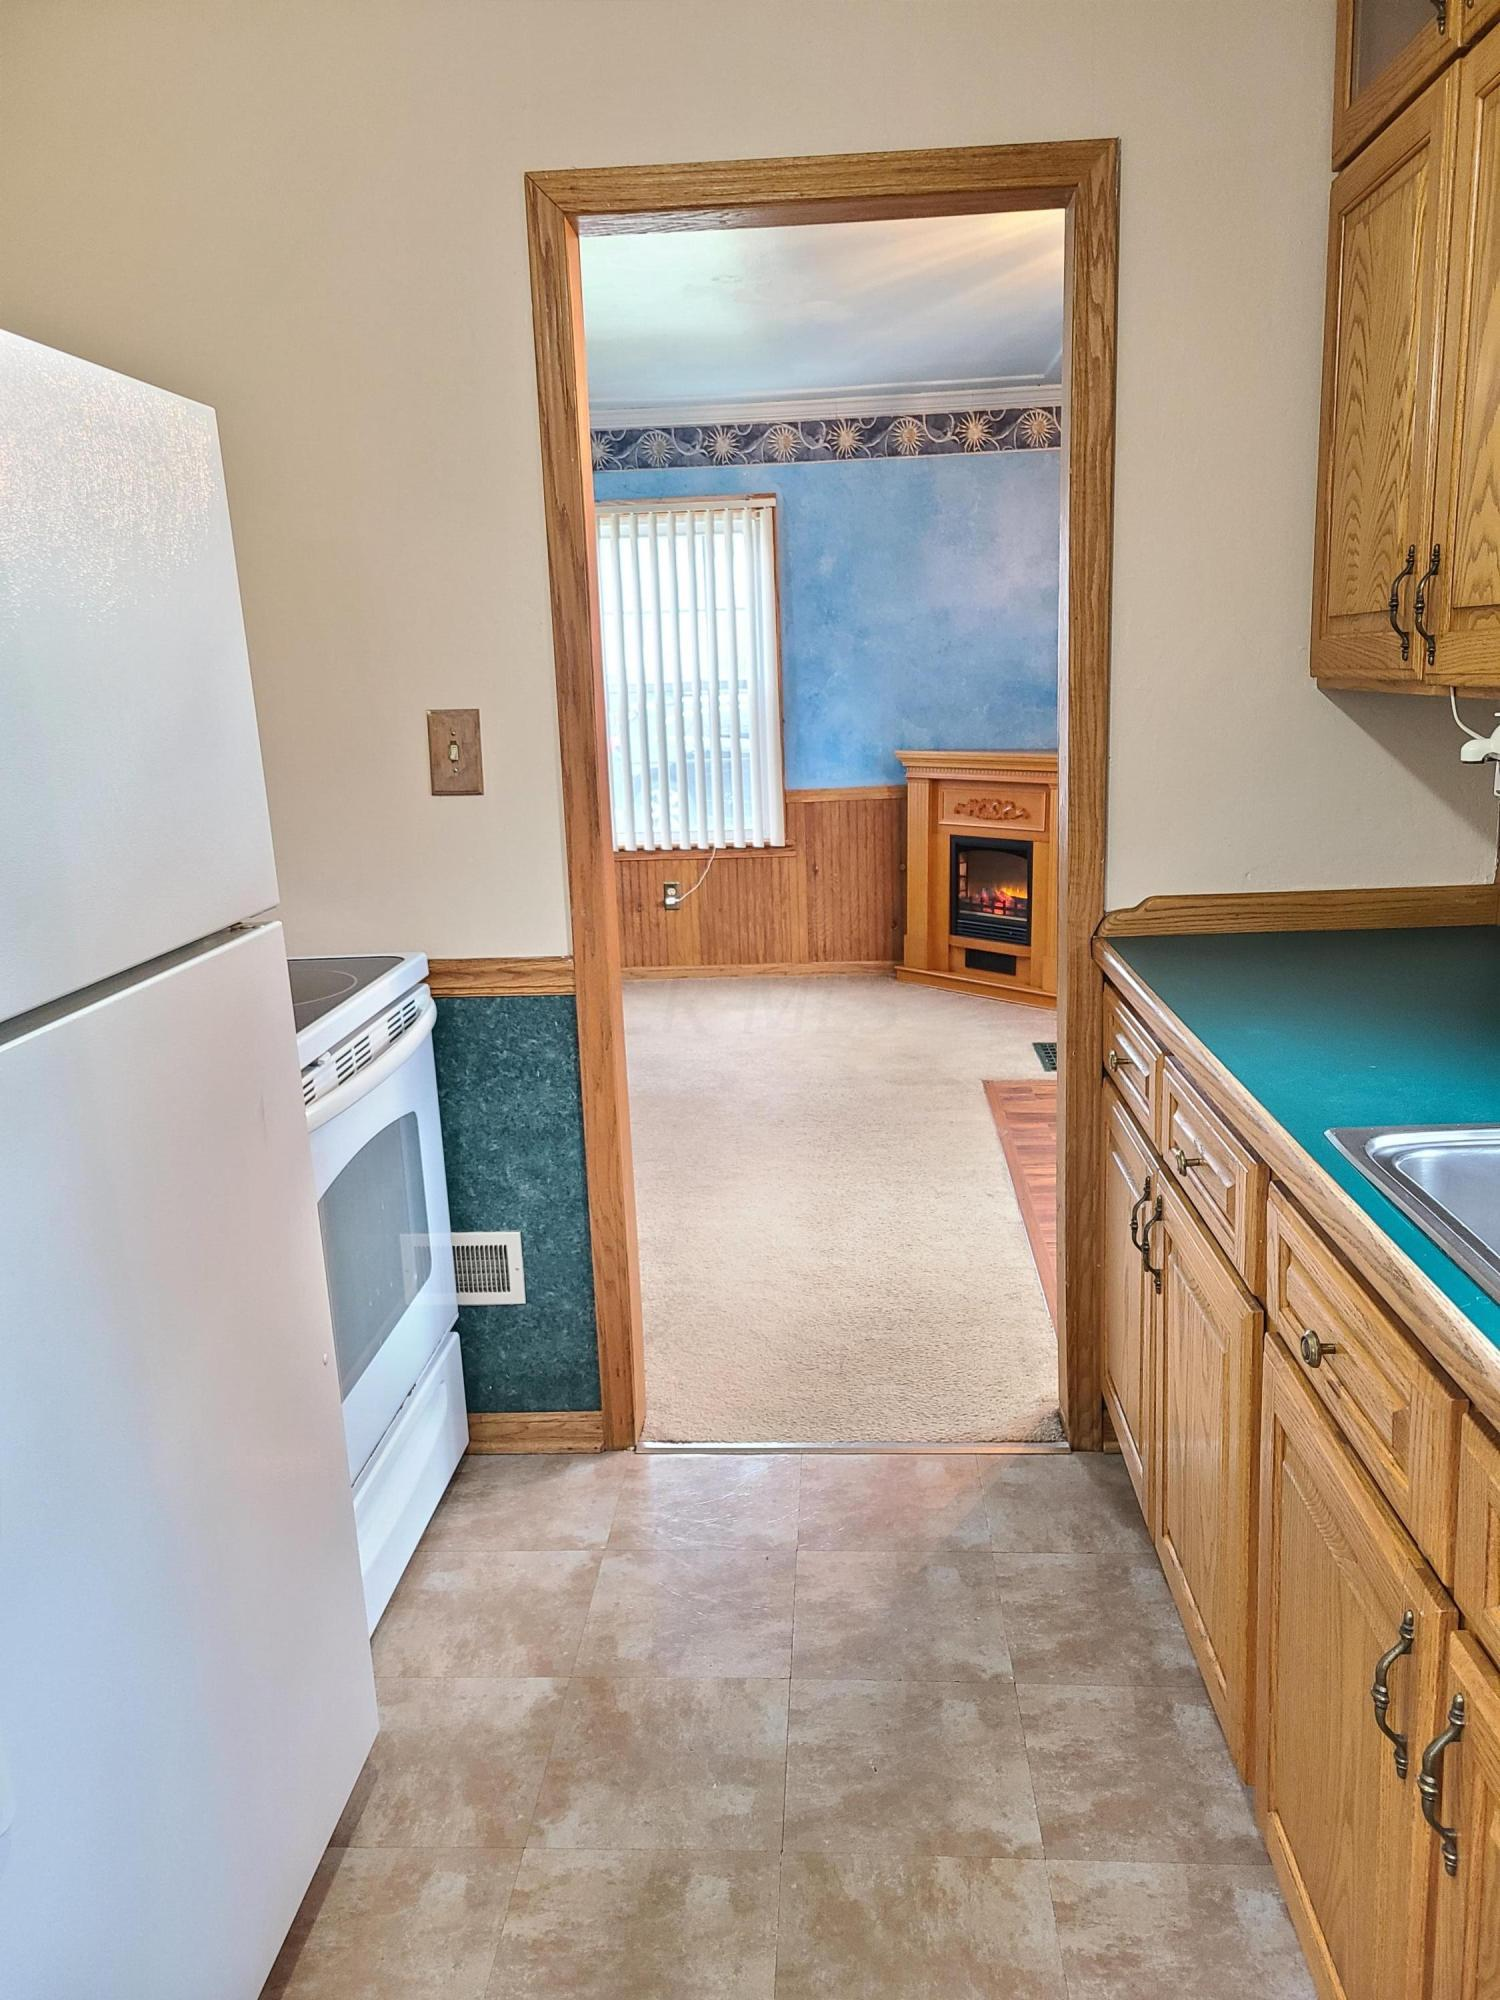 118 Payne Avenue, Galion, Ohio 44833, 2 Bedrooms Bedrooms, ,2 BathroomsBathrooms,Residential,For Sale,Payne,220041128